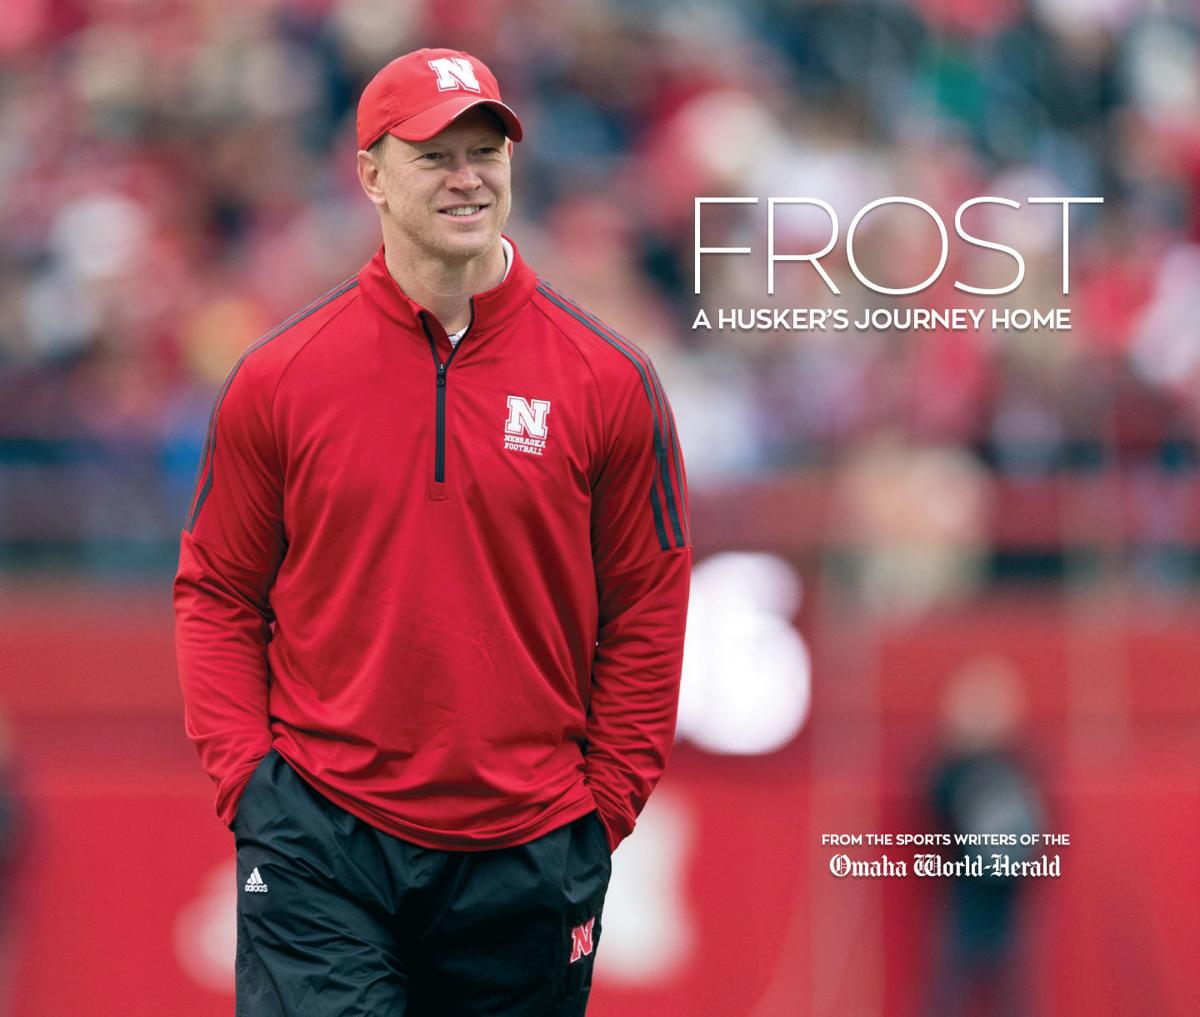 Frost: A Husker's Journey Home